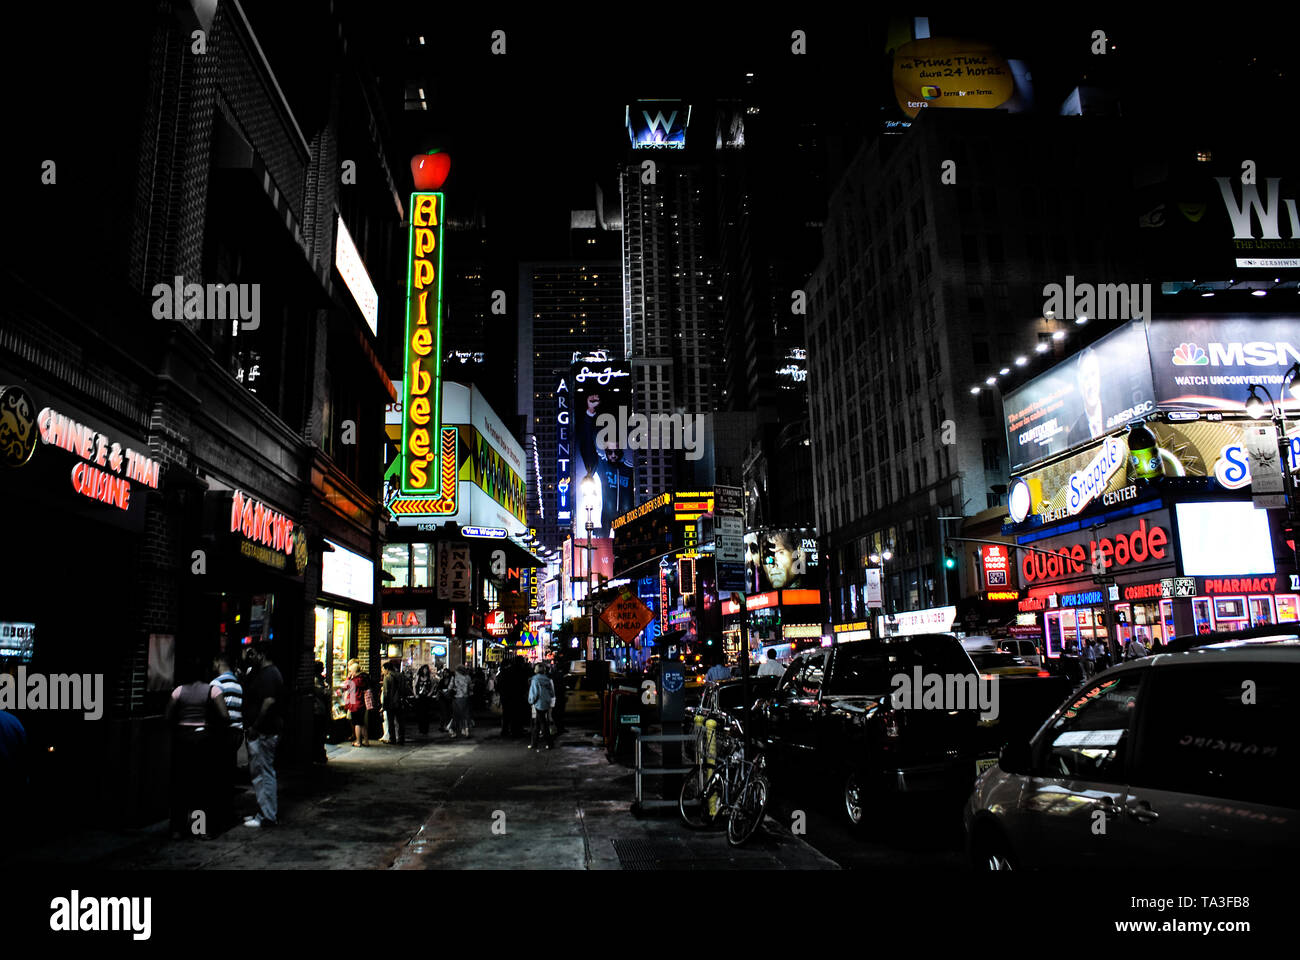 New york, usa - September 11, 2008: Nighttime image of the neon lights and advertising signs of a populous street in a business city in the United Sta - Stock Image